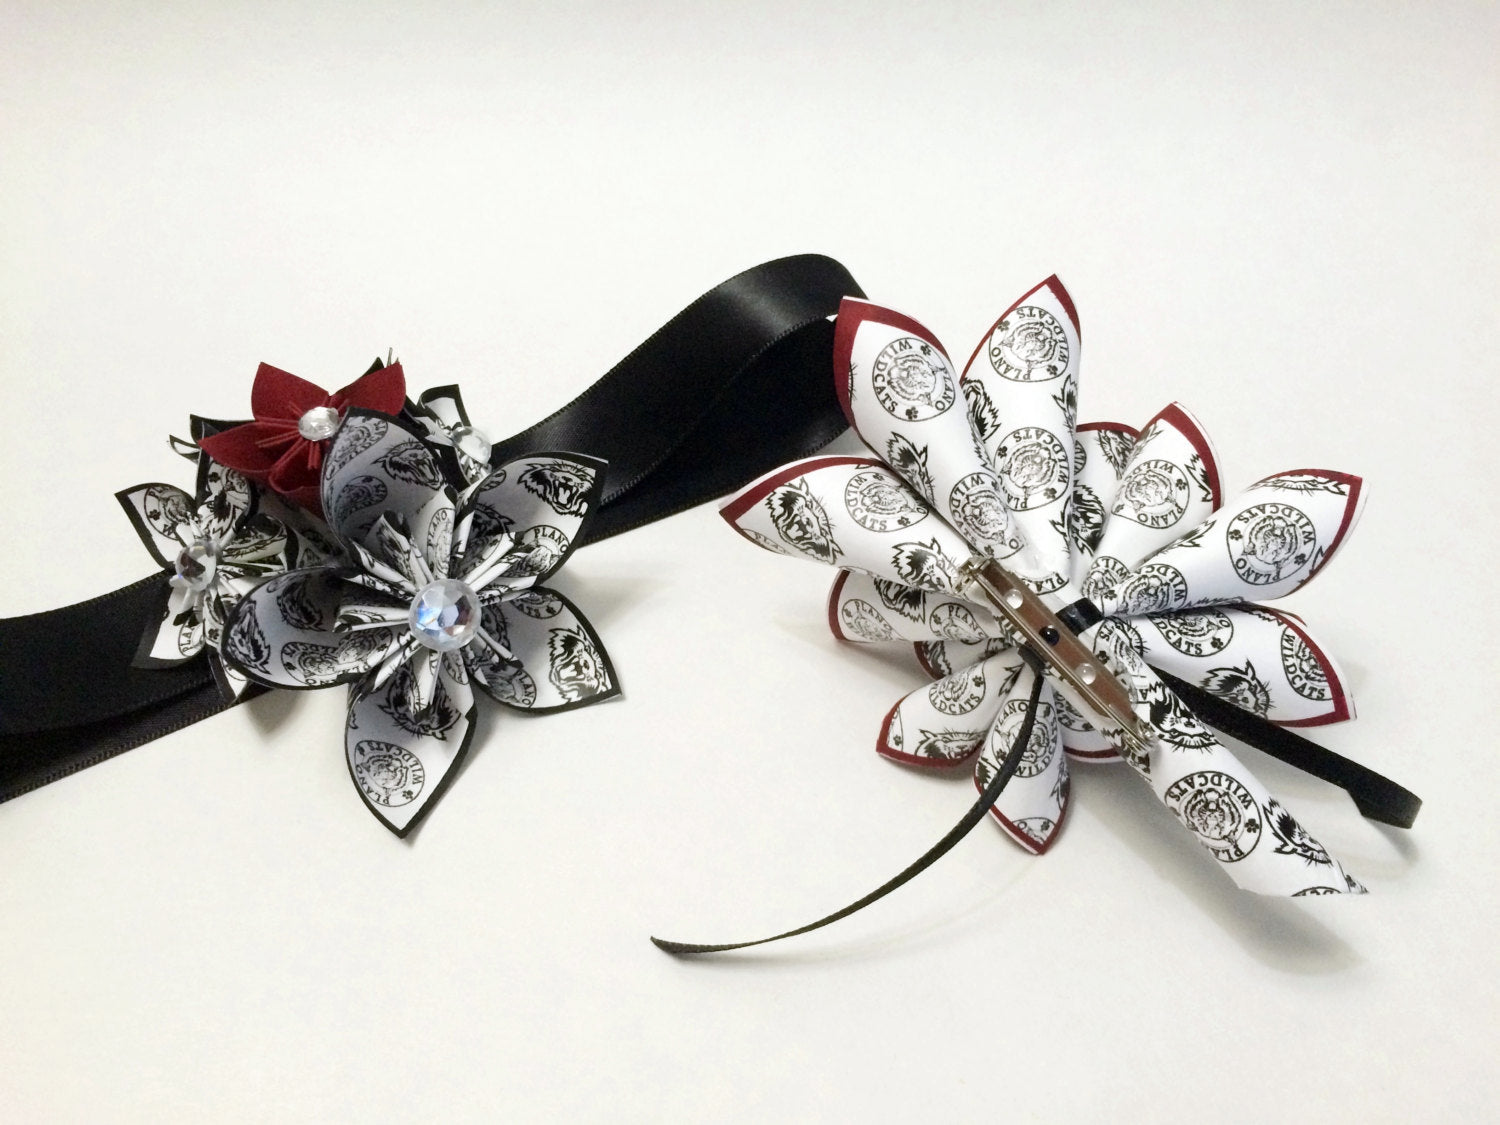 Prom Night- Custom Corsage & Boutonniere set, Your School Logo, military ball, homecoming, formal accessory, handmade, one of a kind